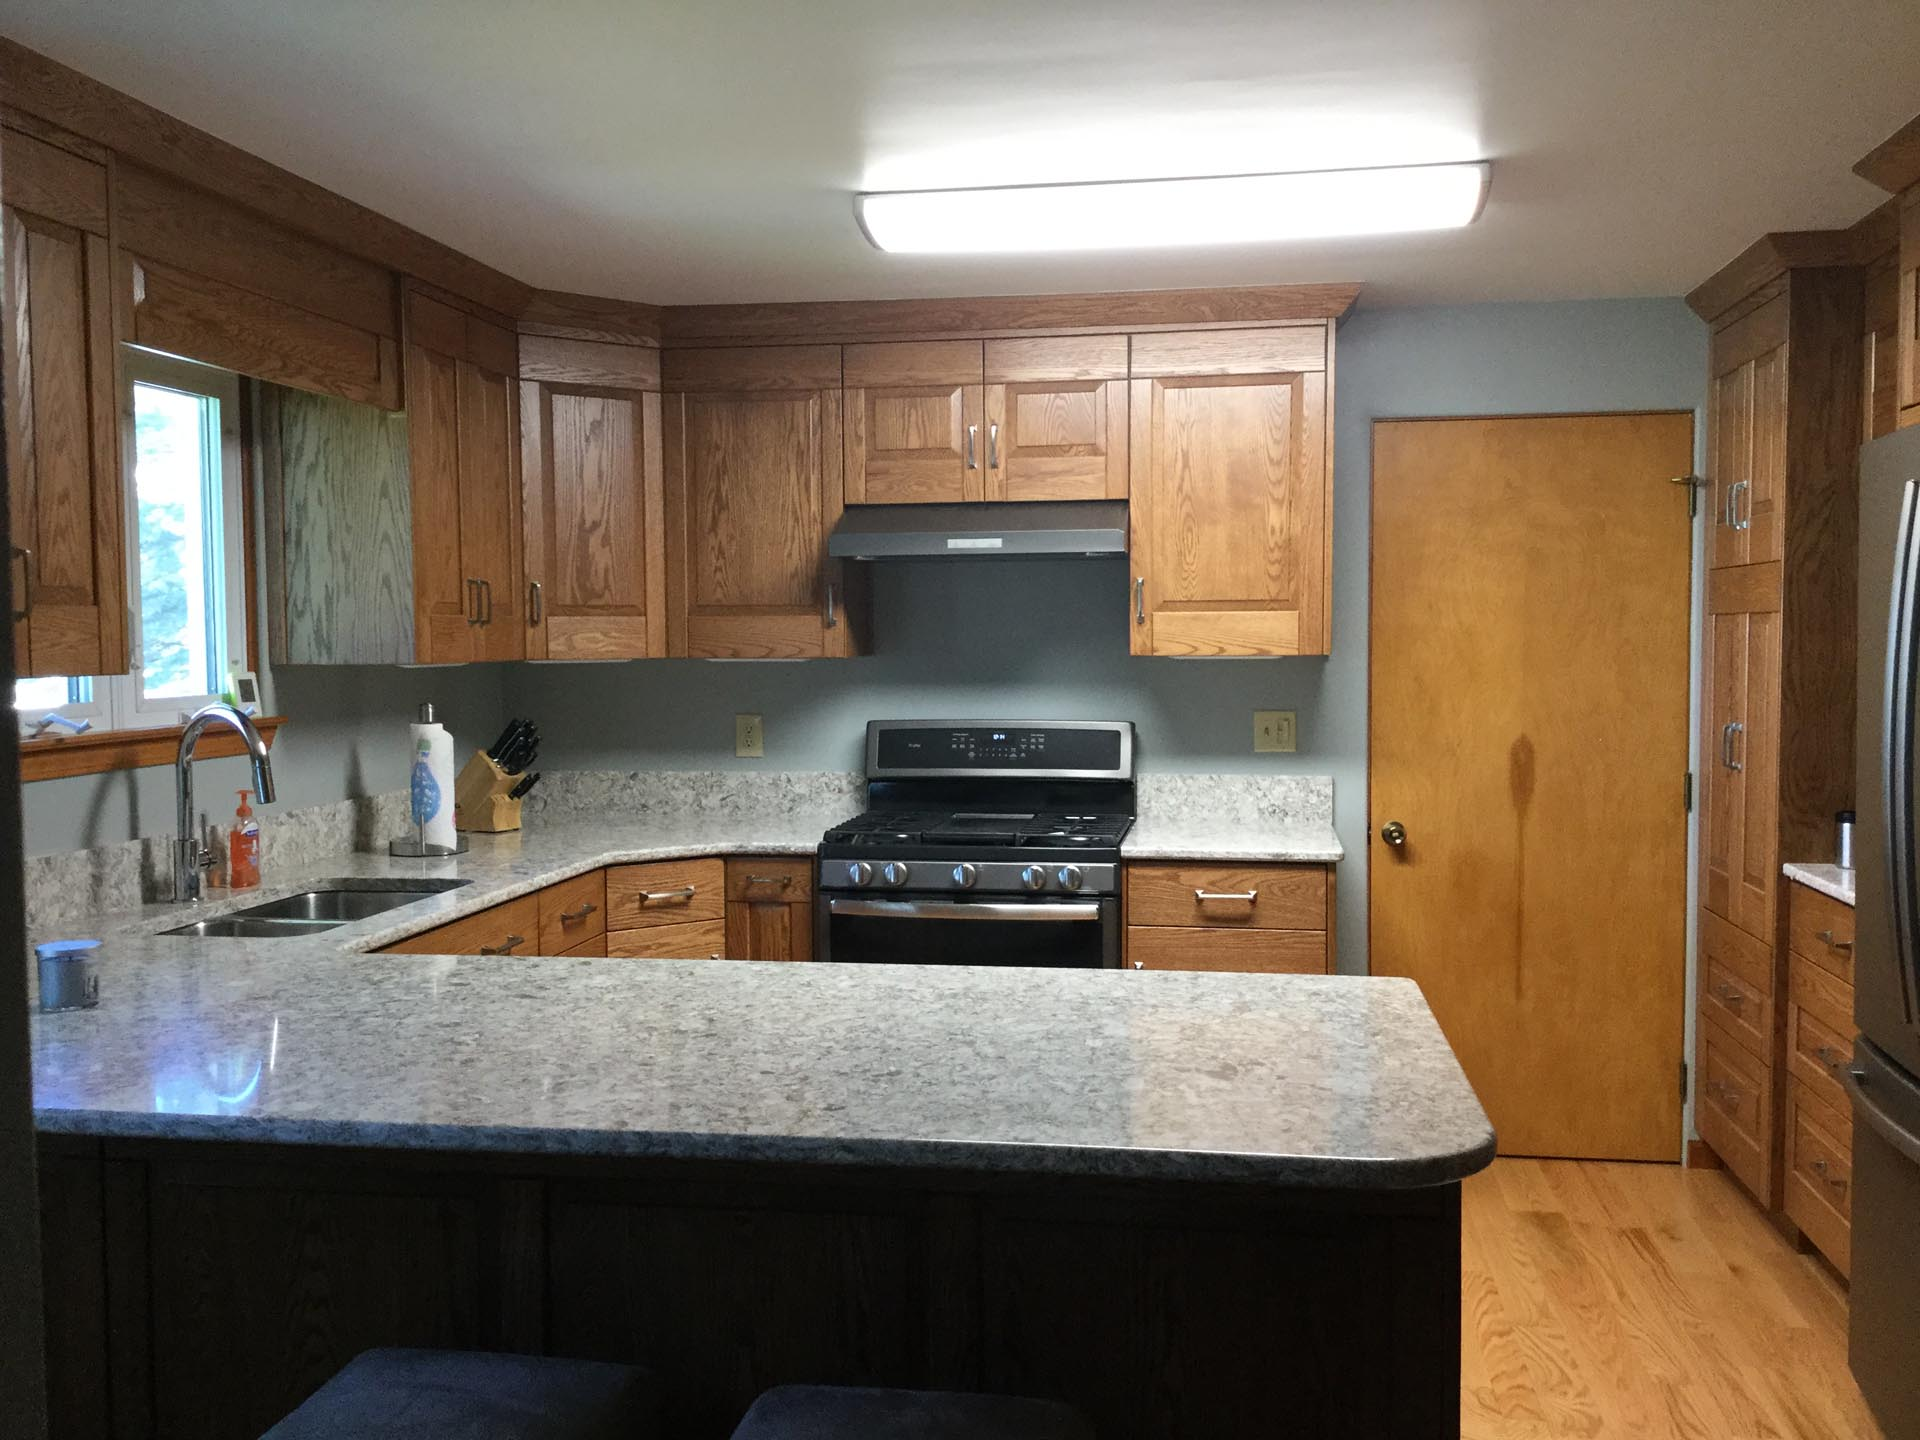 Kitchen Sink and Faucet Remodel